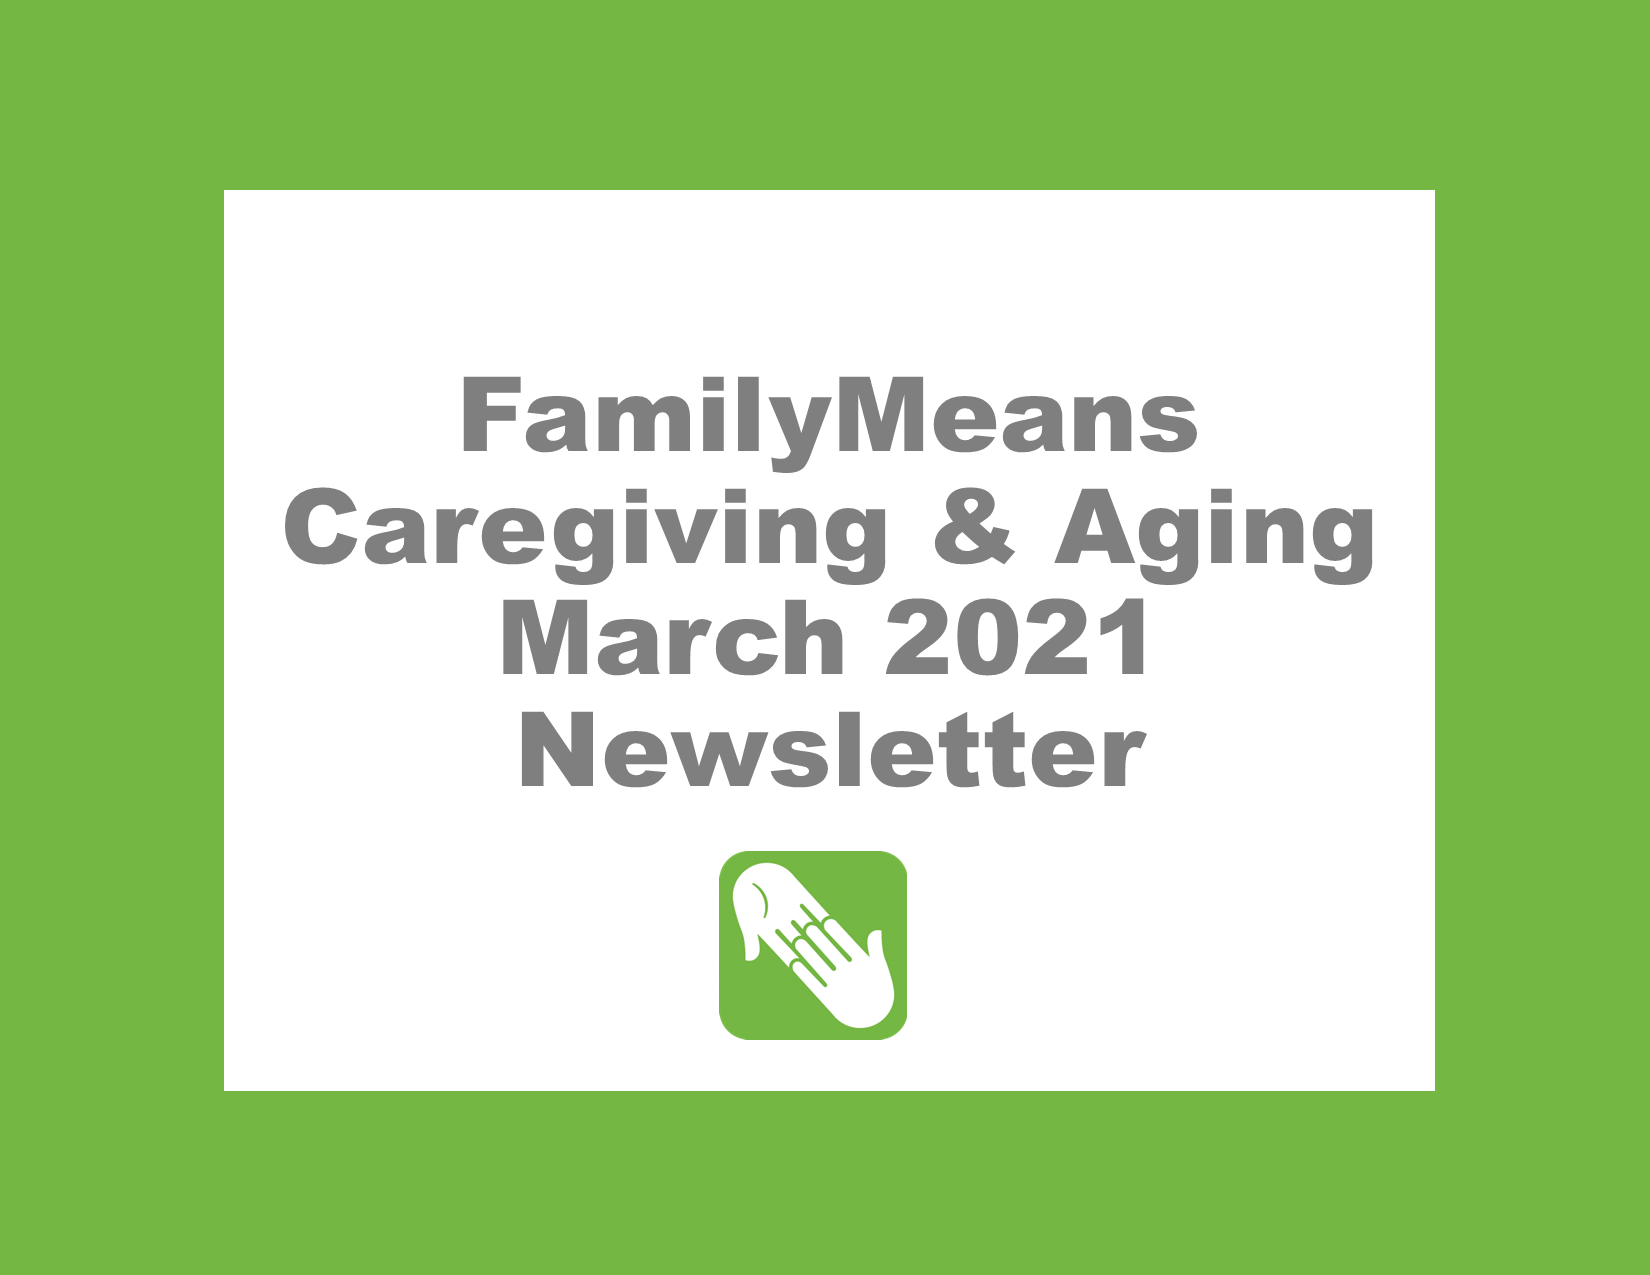 Caregiving & Aging March 2021 Newsletter